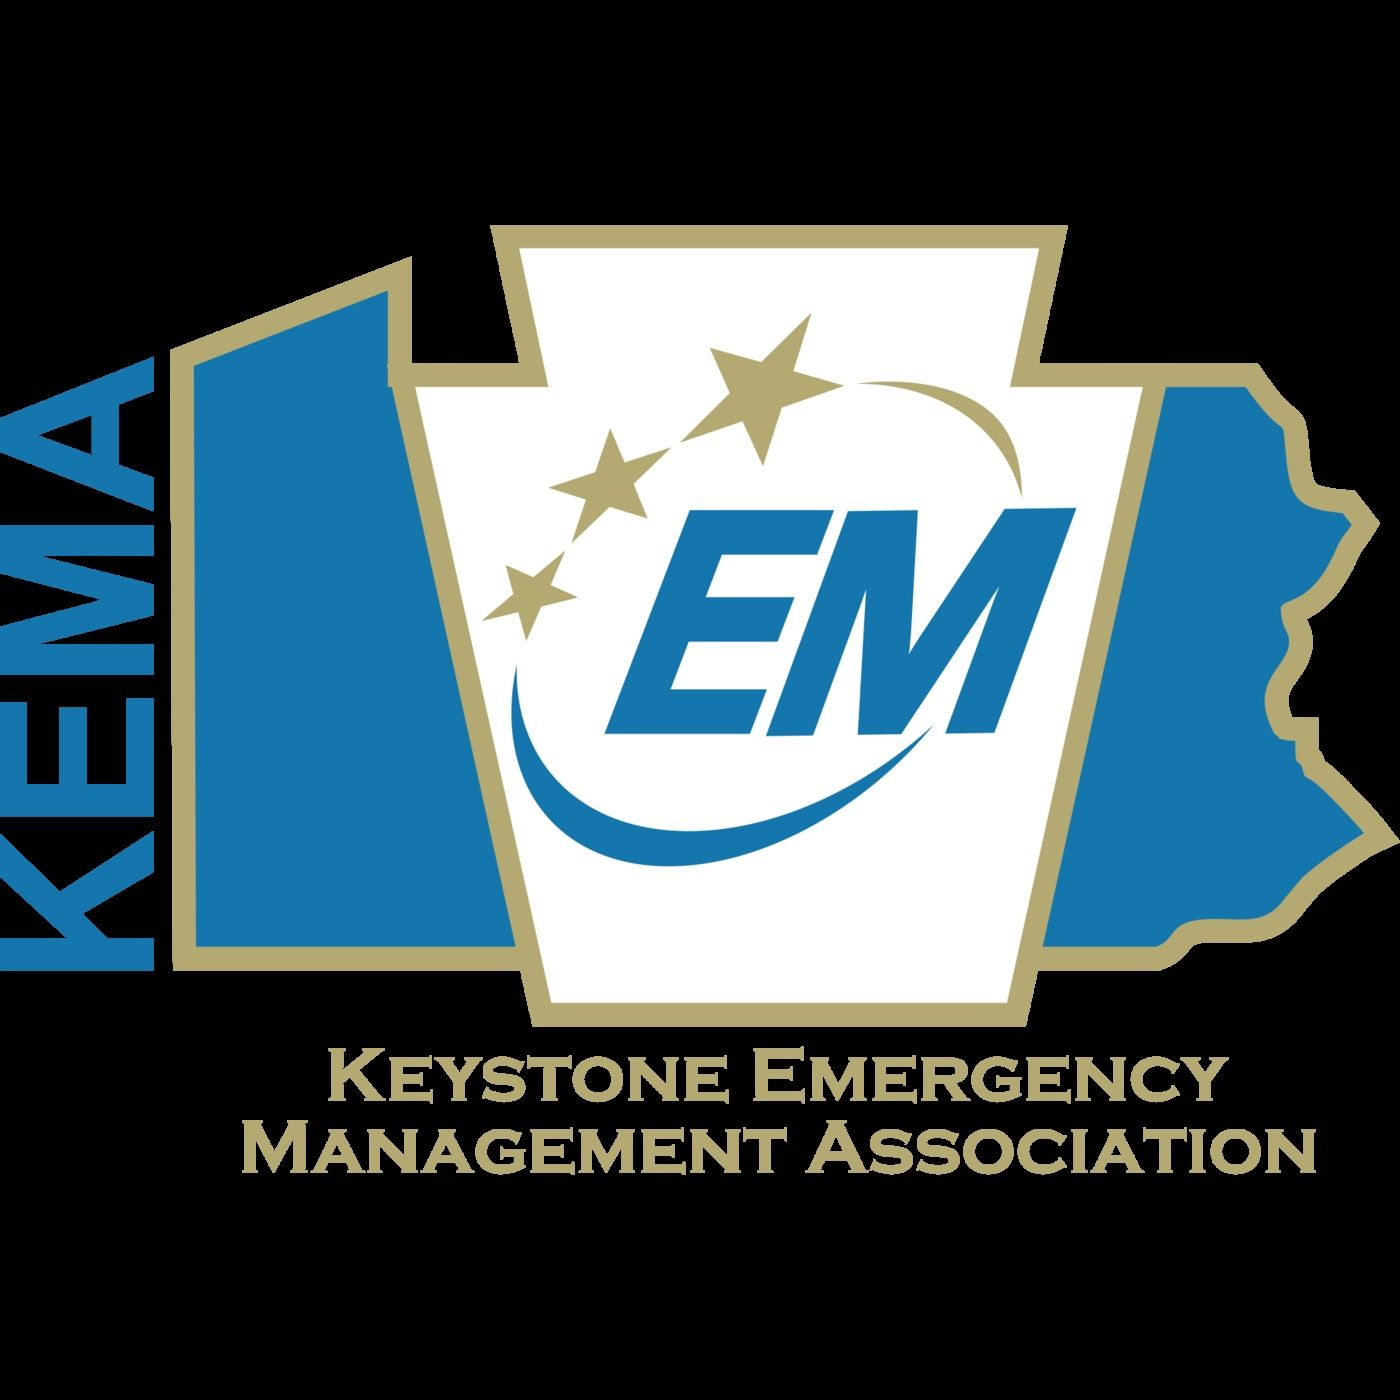 Episode 43 - The State of Emergency Management